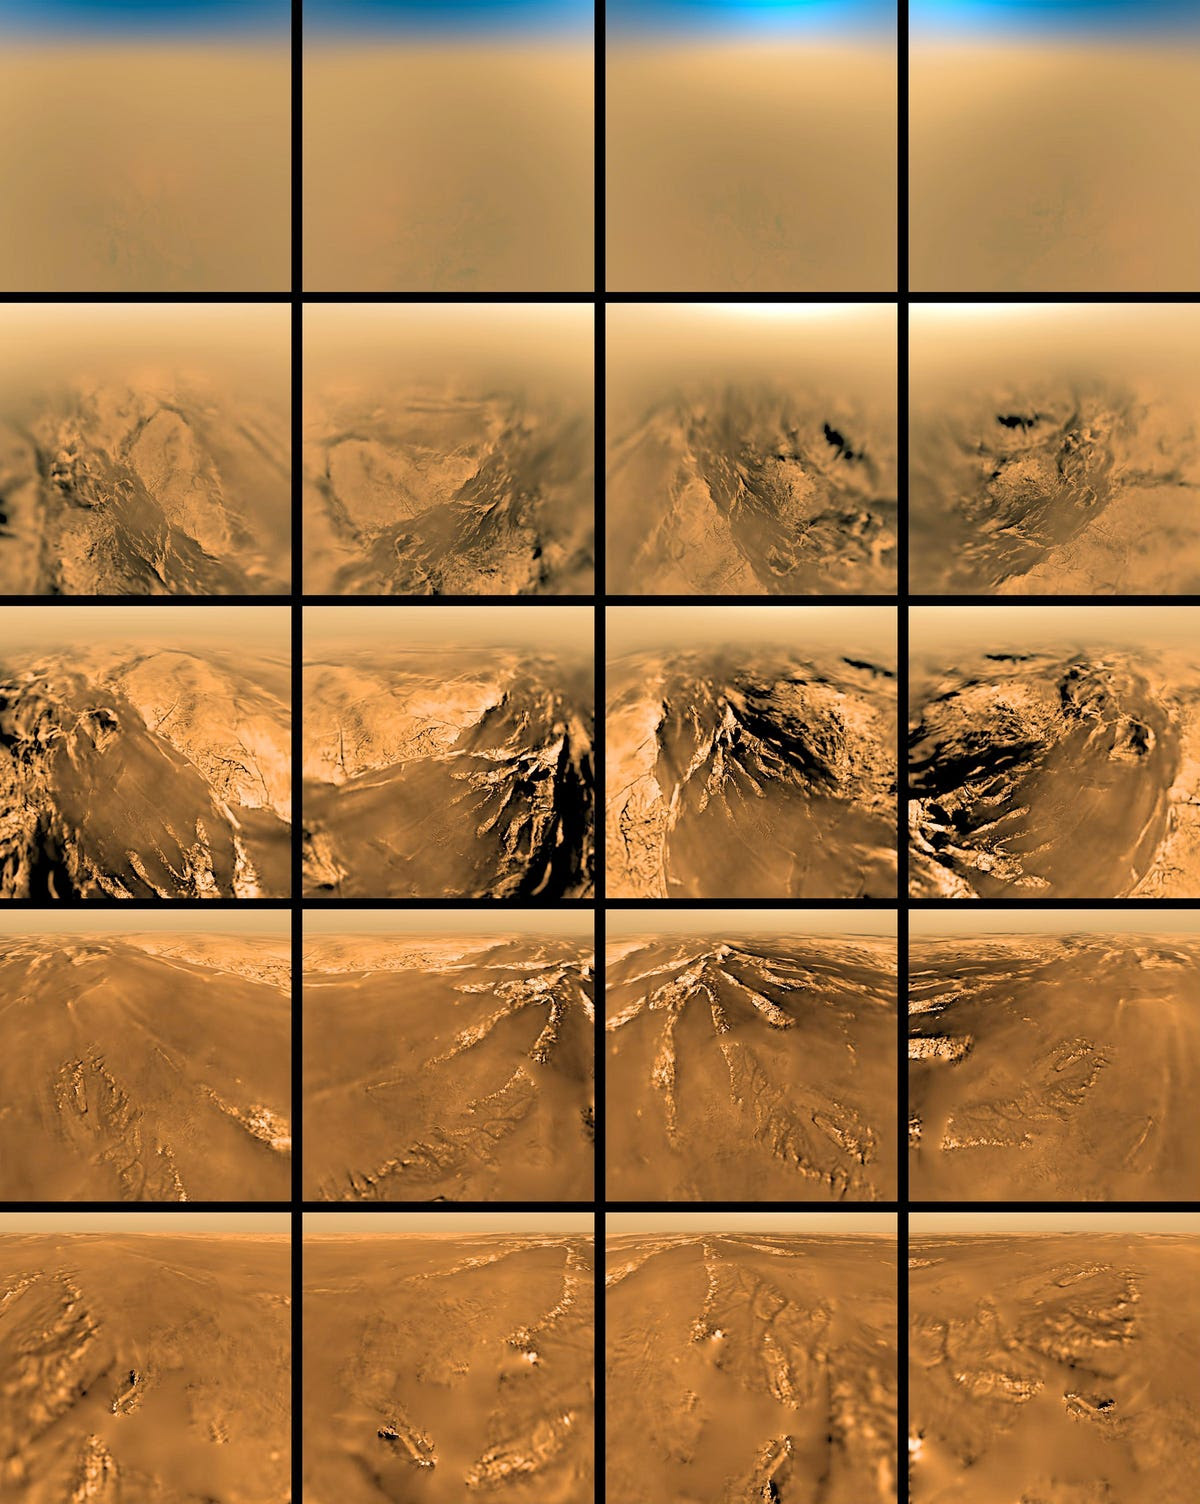 In January 2004, Cassini dropped off Huygens — a European-built lander — on Titan, leading to the first alien-moon landing in human history.